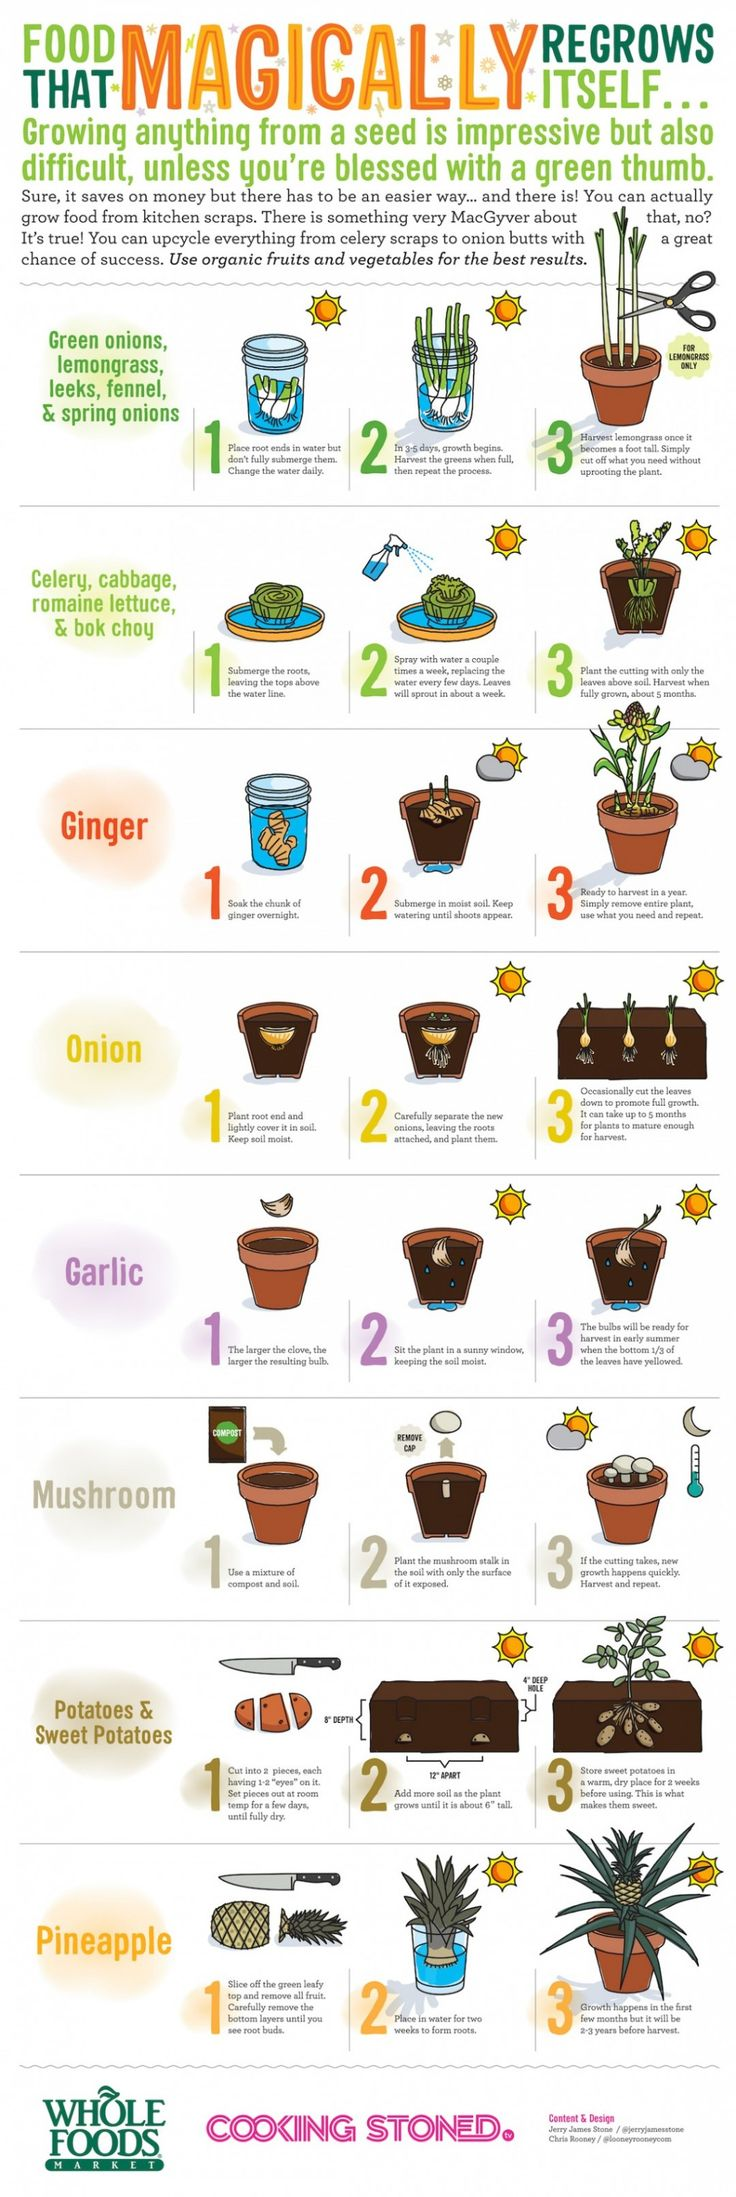 Easy Gardening: Growing Vegetables Plants From Kitchen Scraps!